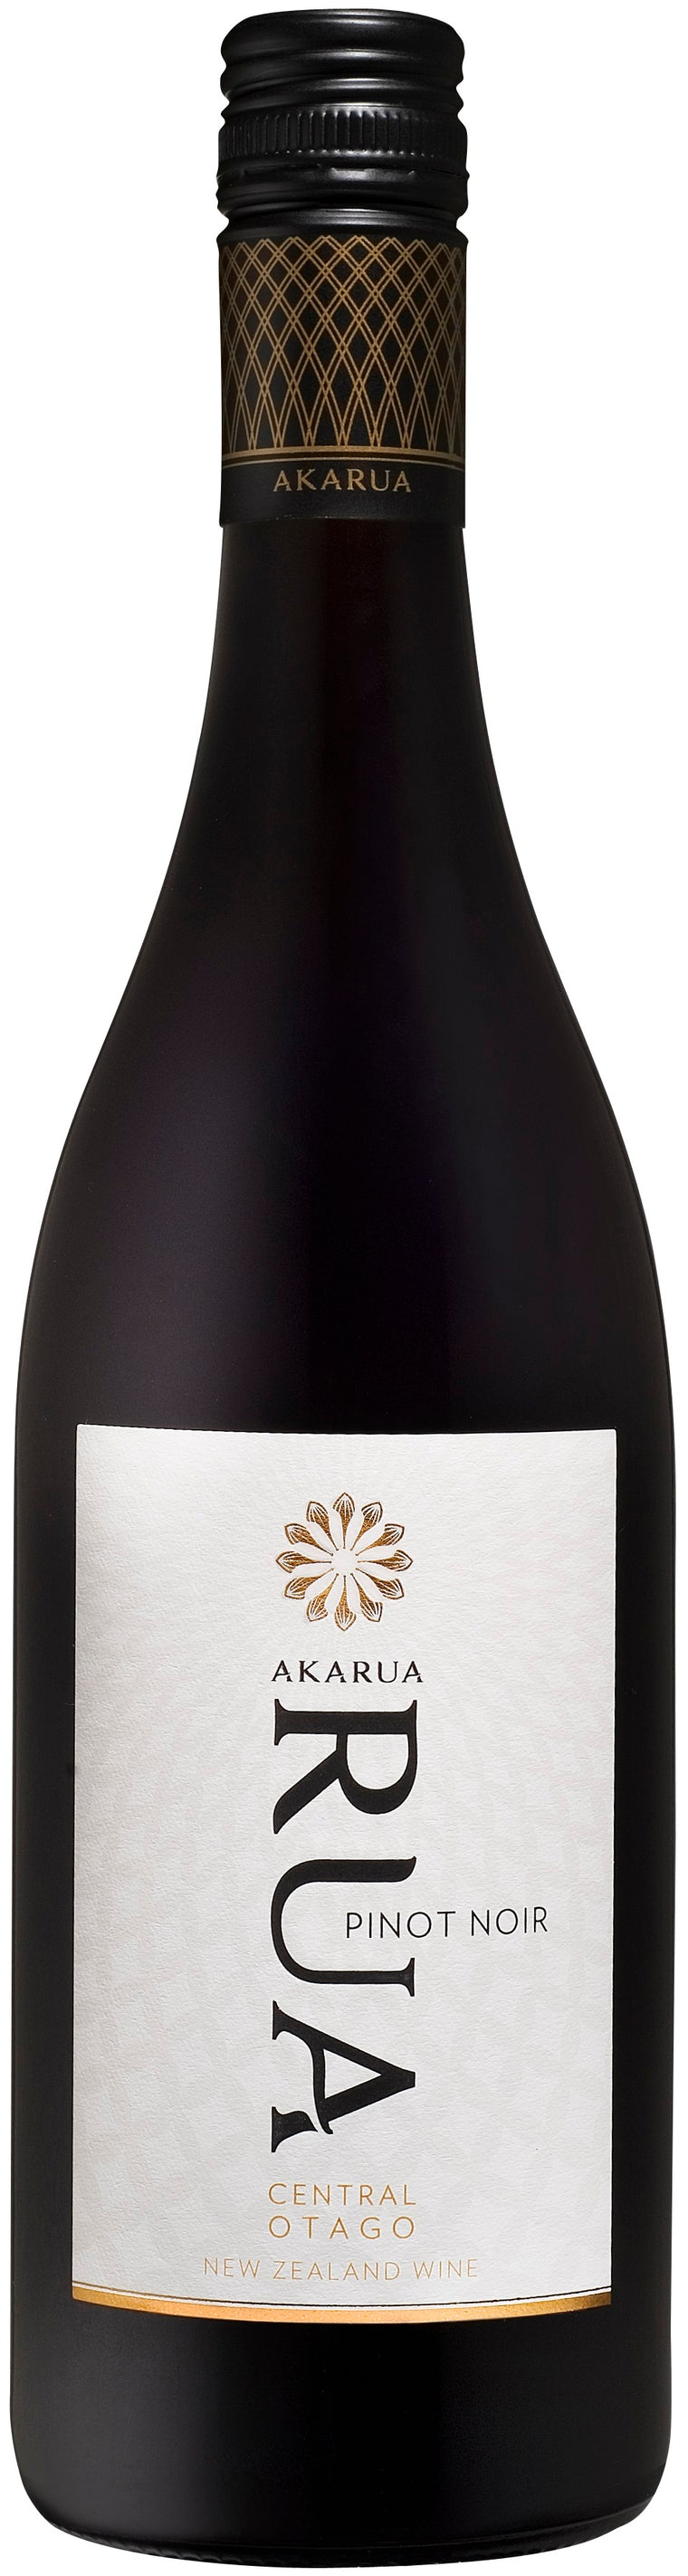 `RUA` Central Otago Pinot Noir 2017, Akarua, New Zealand 14%